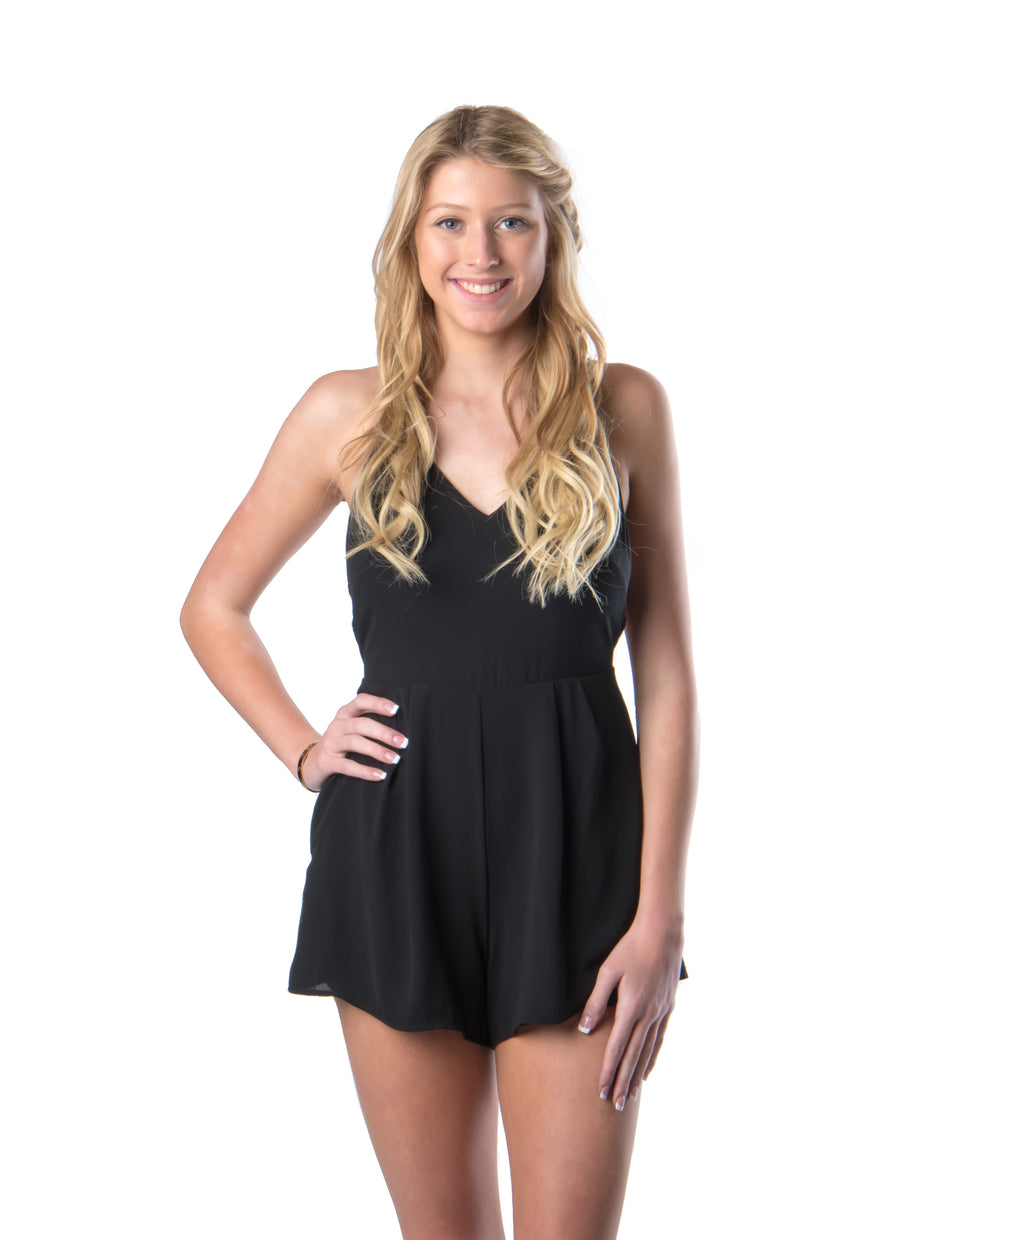 Back to Black Romper